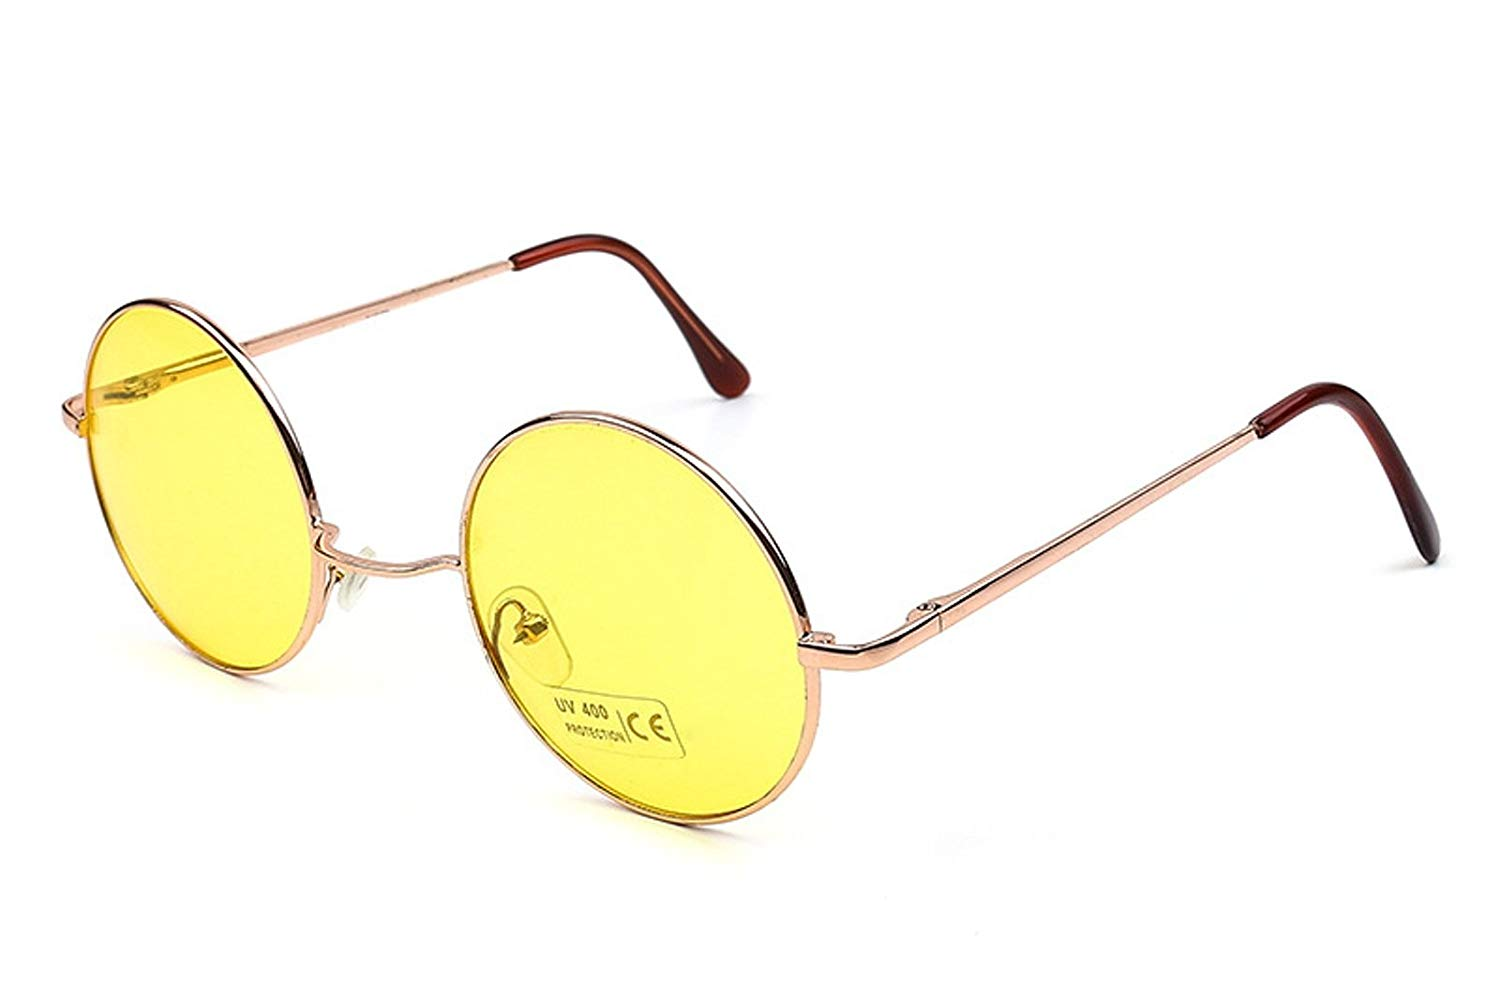 51763218bae Get Quotations · Caixia Women s SJT-TZ Colored Tinted Lens Retro Metal  Round Sunglasses